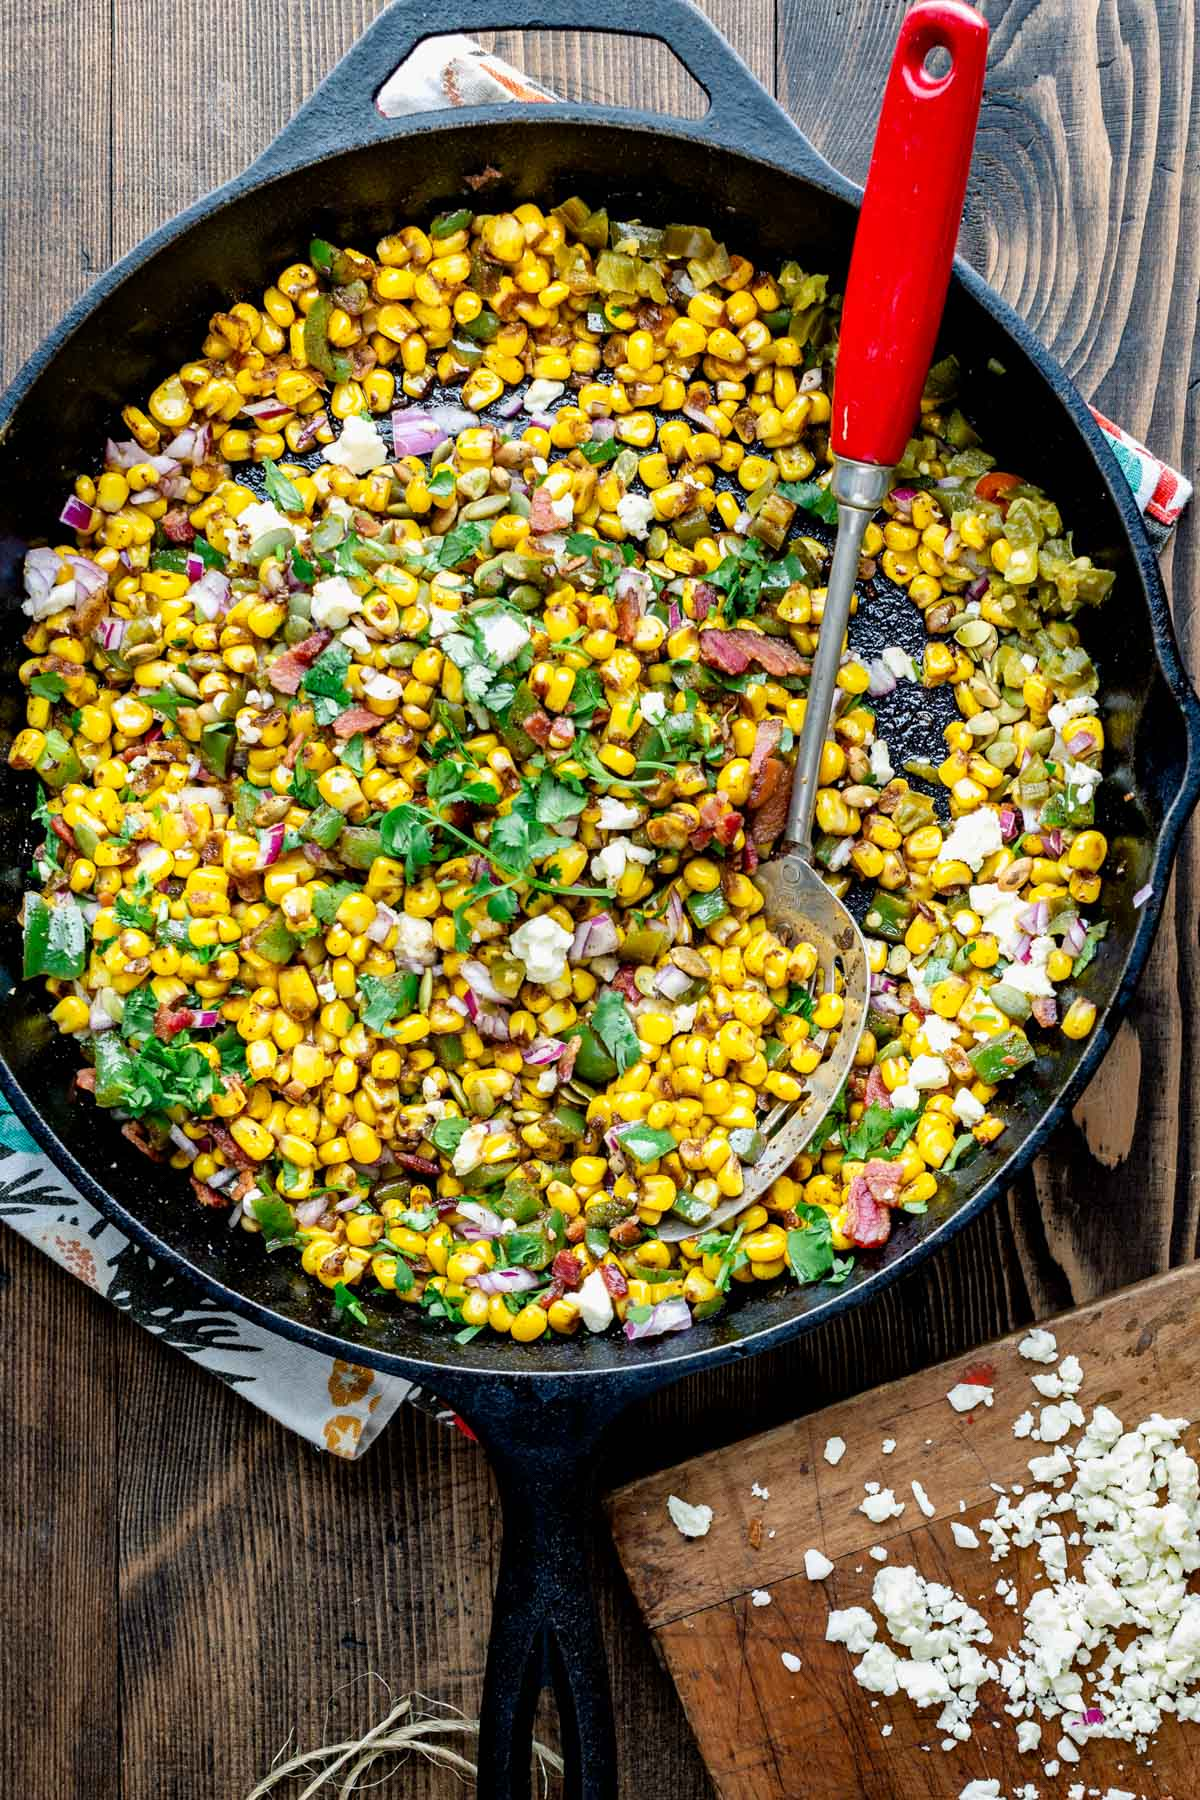 Street corn skillet off the cob in a black iron skillet